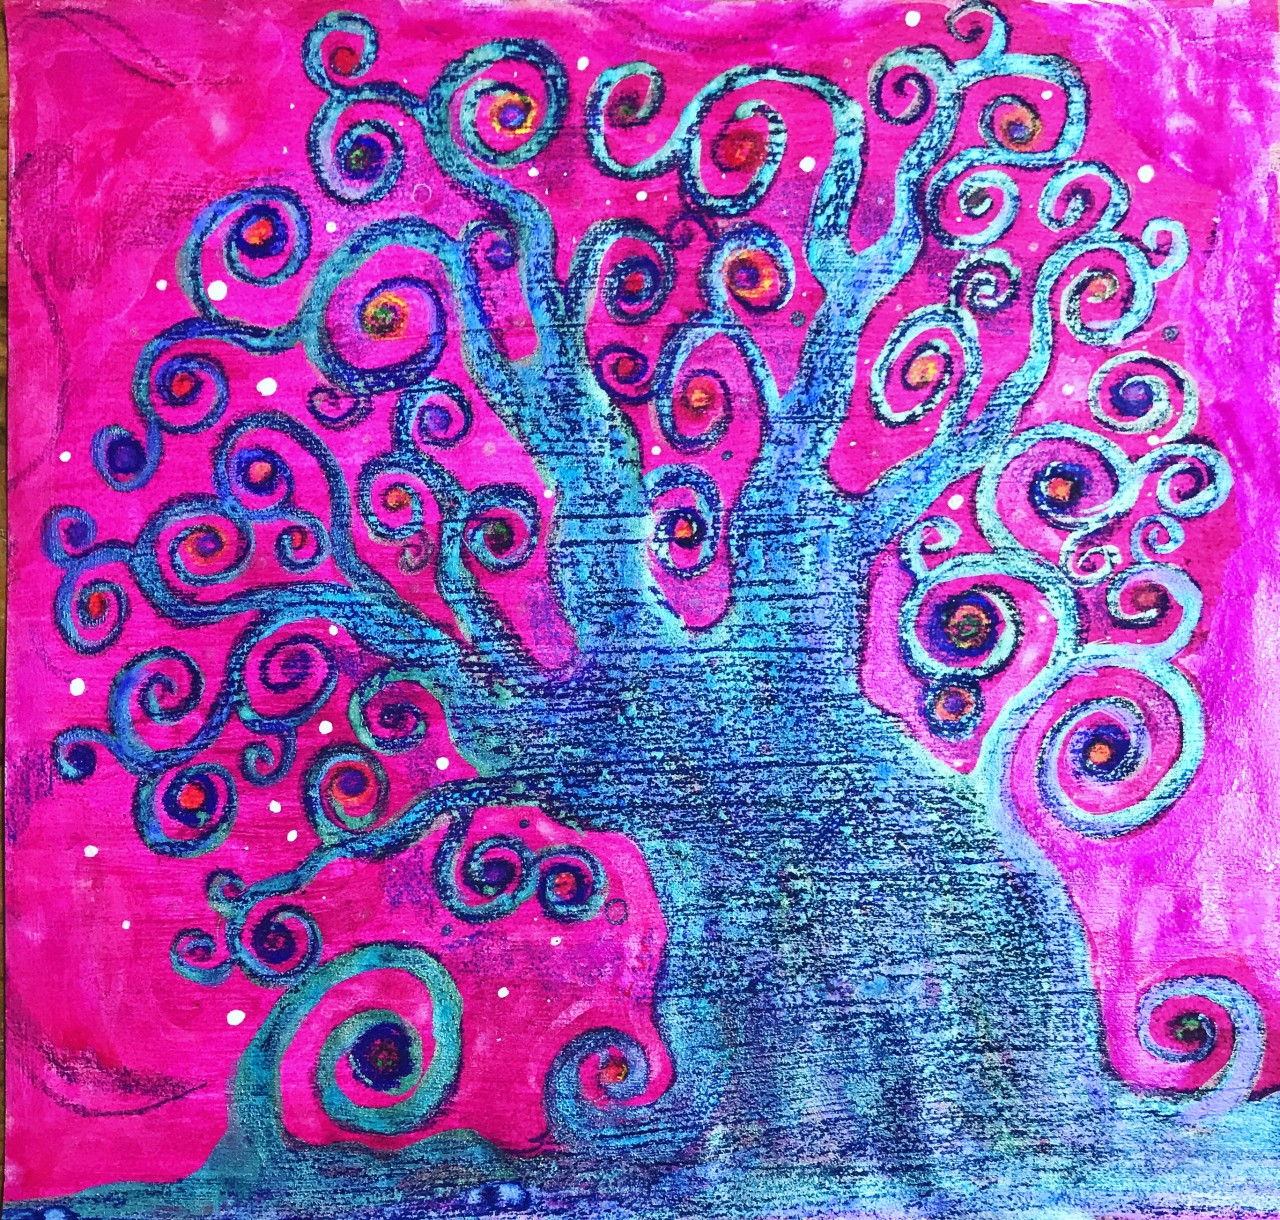 curly-wurly-tree-of-life